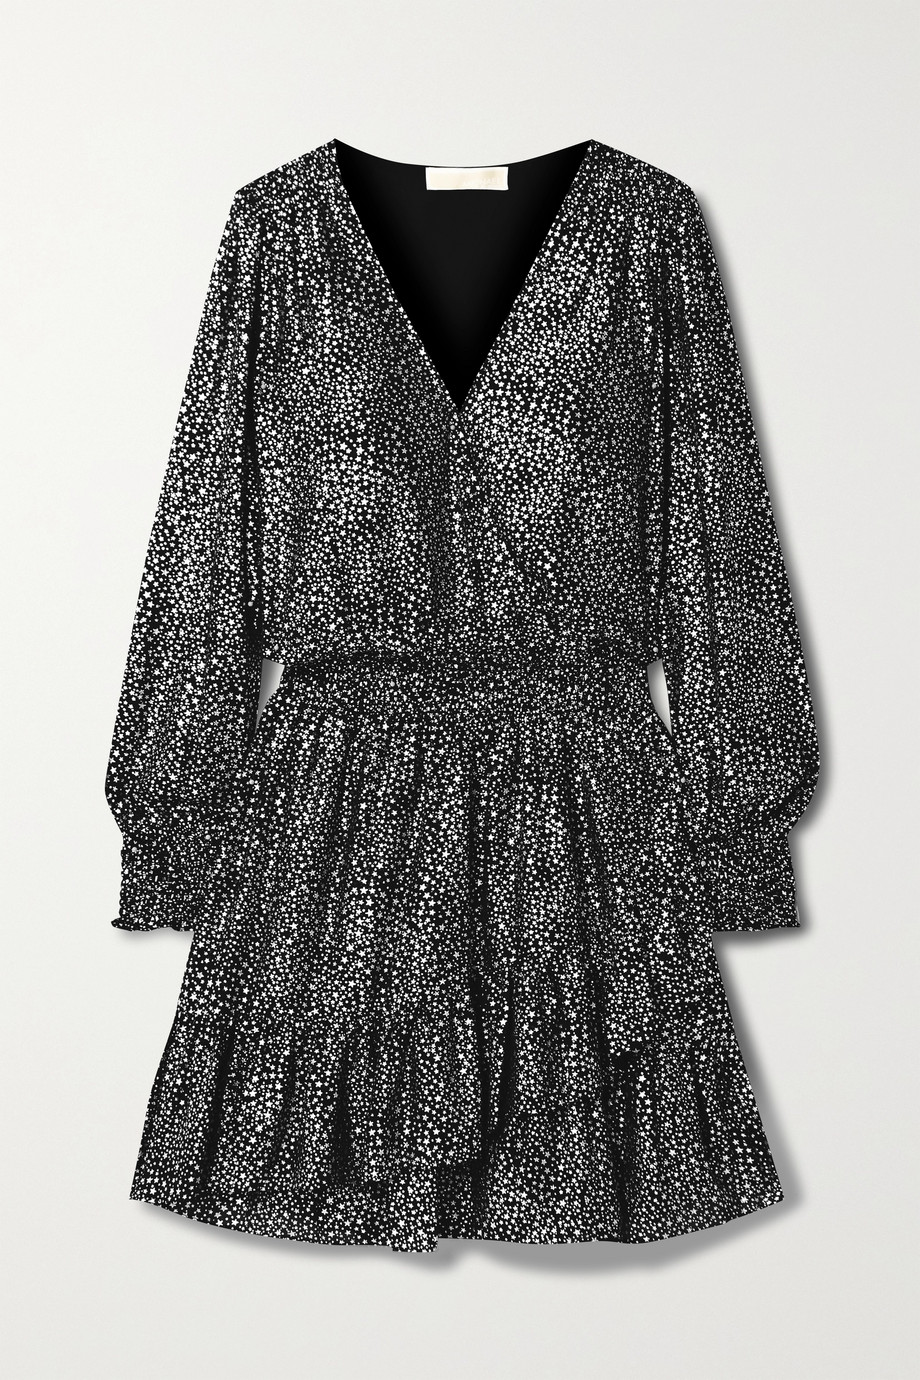 MICHAEL MICHAEL KORS Wrap-effect ruffled metallic printed georgette mini dress